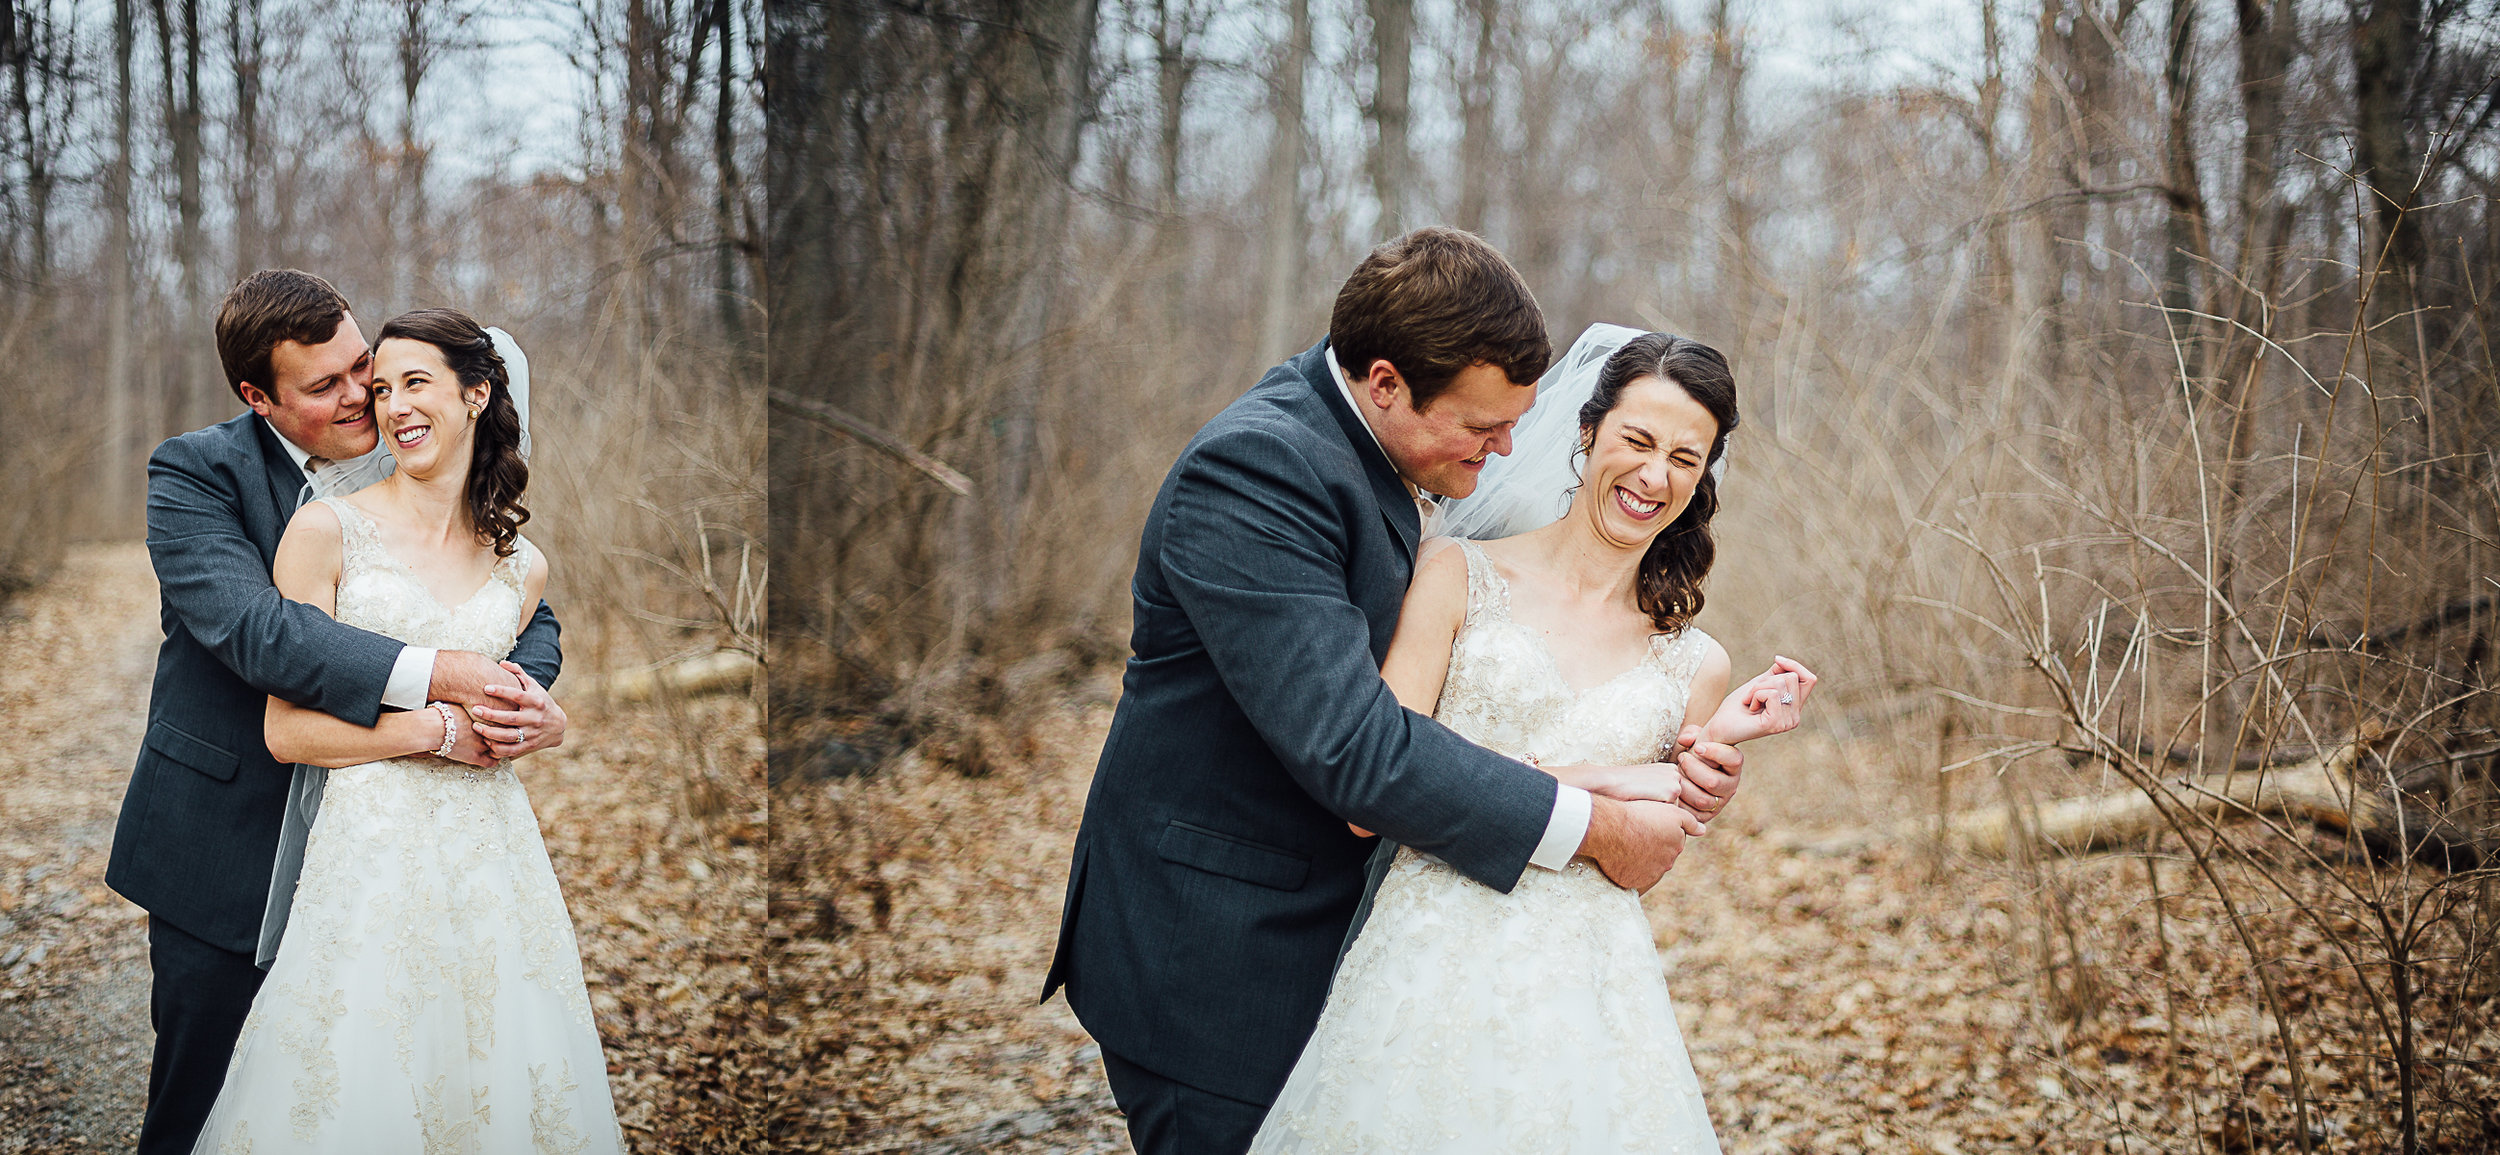 Happy Bride and Groom Portraits by Corrie Mick Photography.jpg